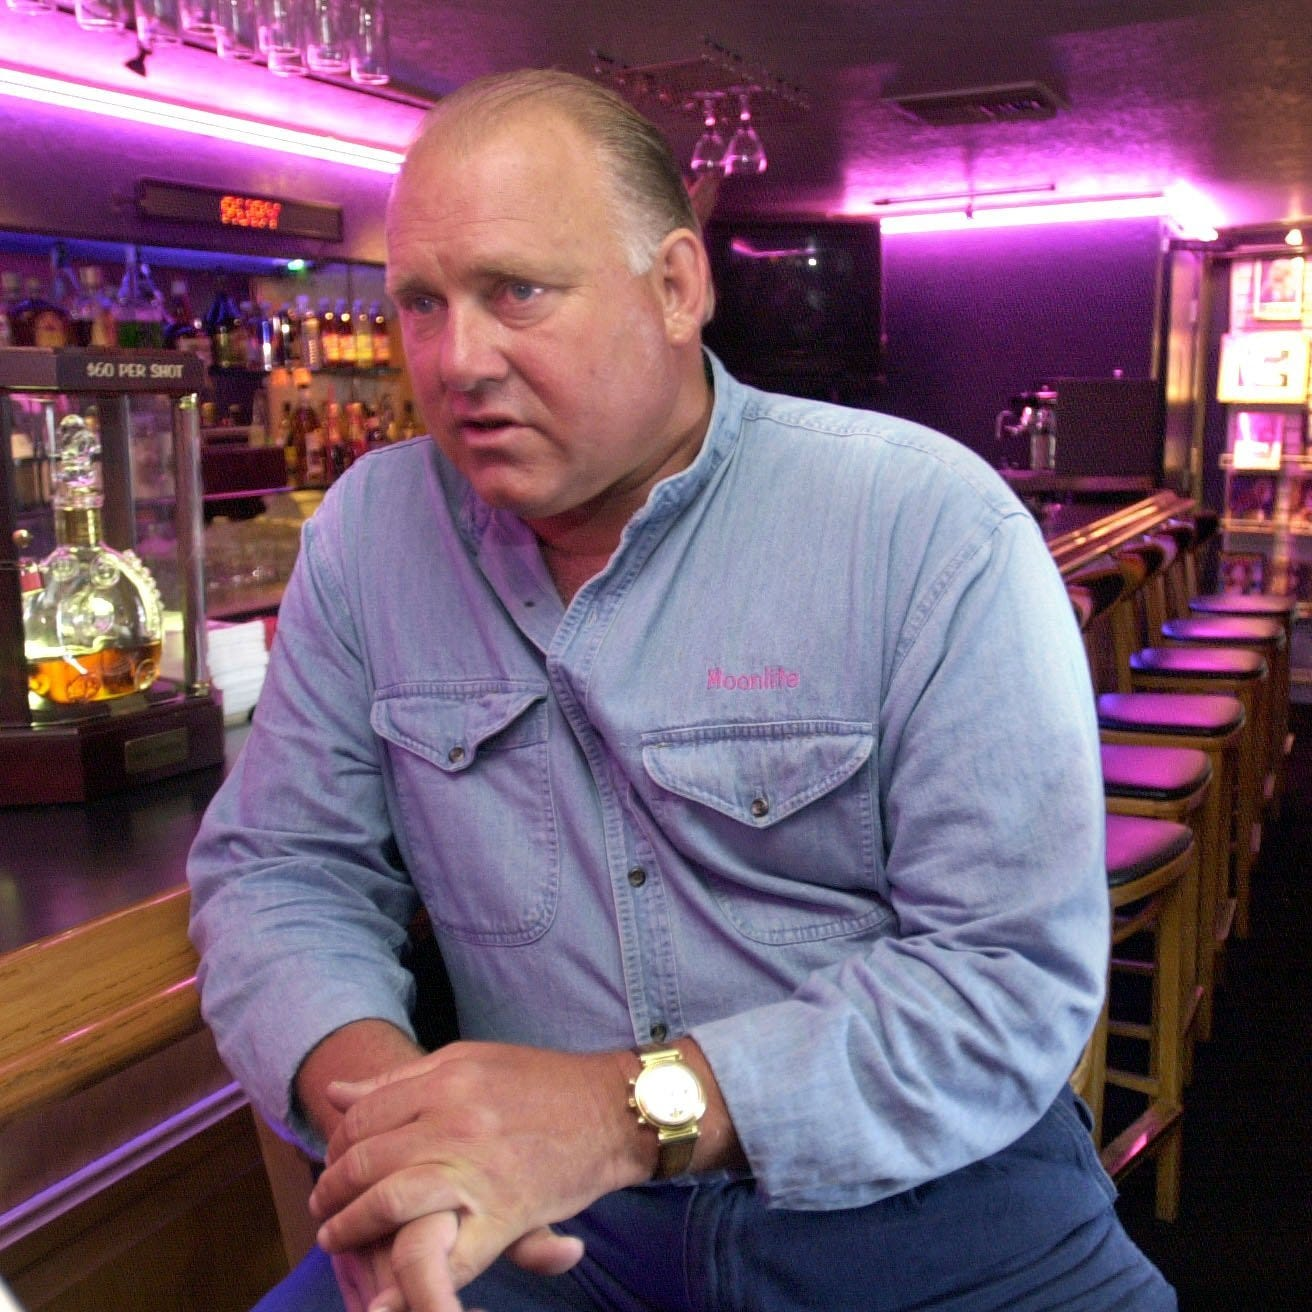 Dennis Hof autopsy report released: Nevada brothel owner and politician died of heart attack